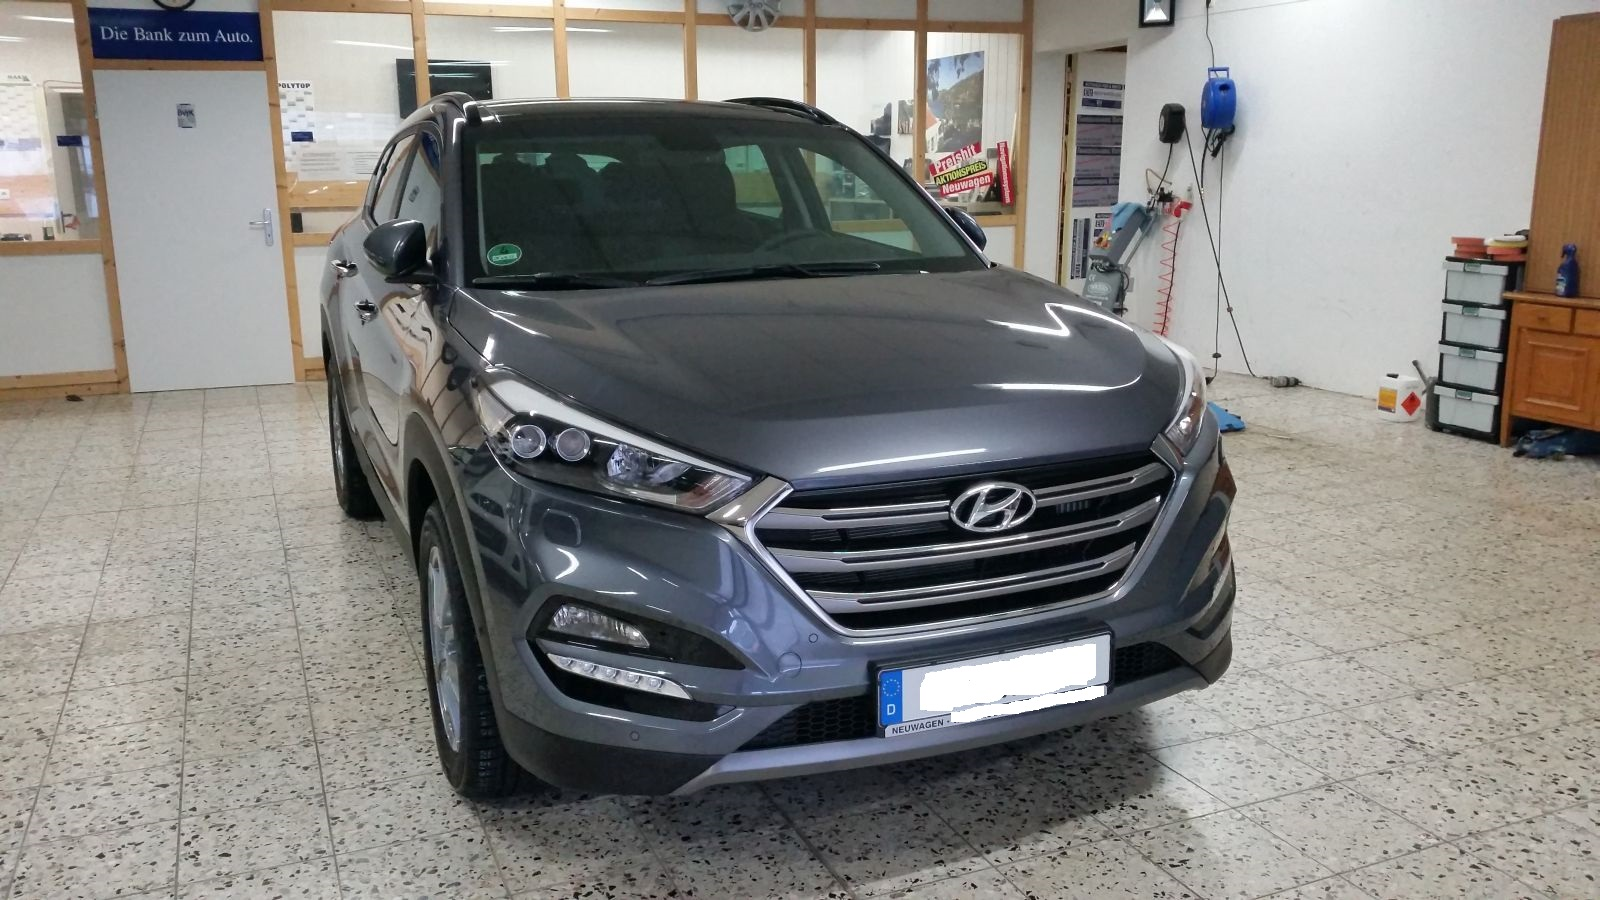 hyundai tucson micron grey farbwahl tucson hyundai ix35 ix55 santa fe tucson terracan. Black Bedroom Furniture Sets. Home Design Ideas